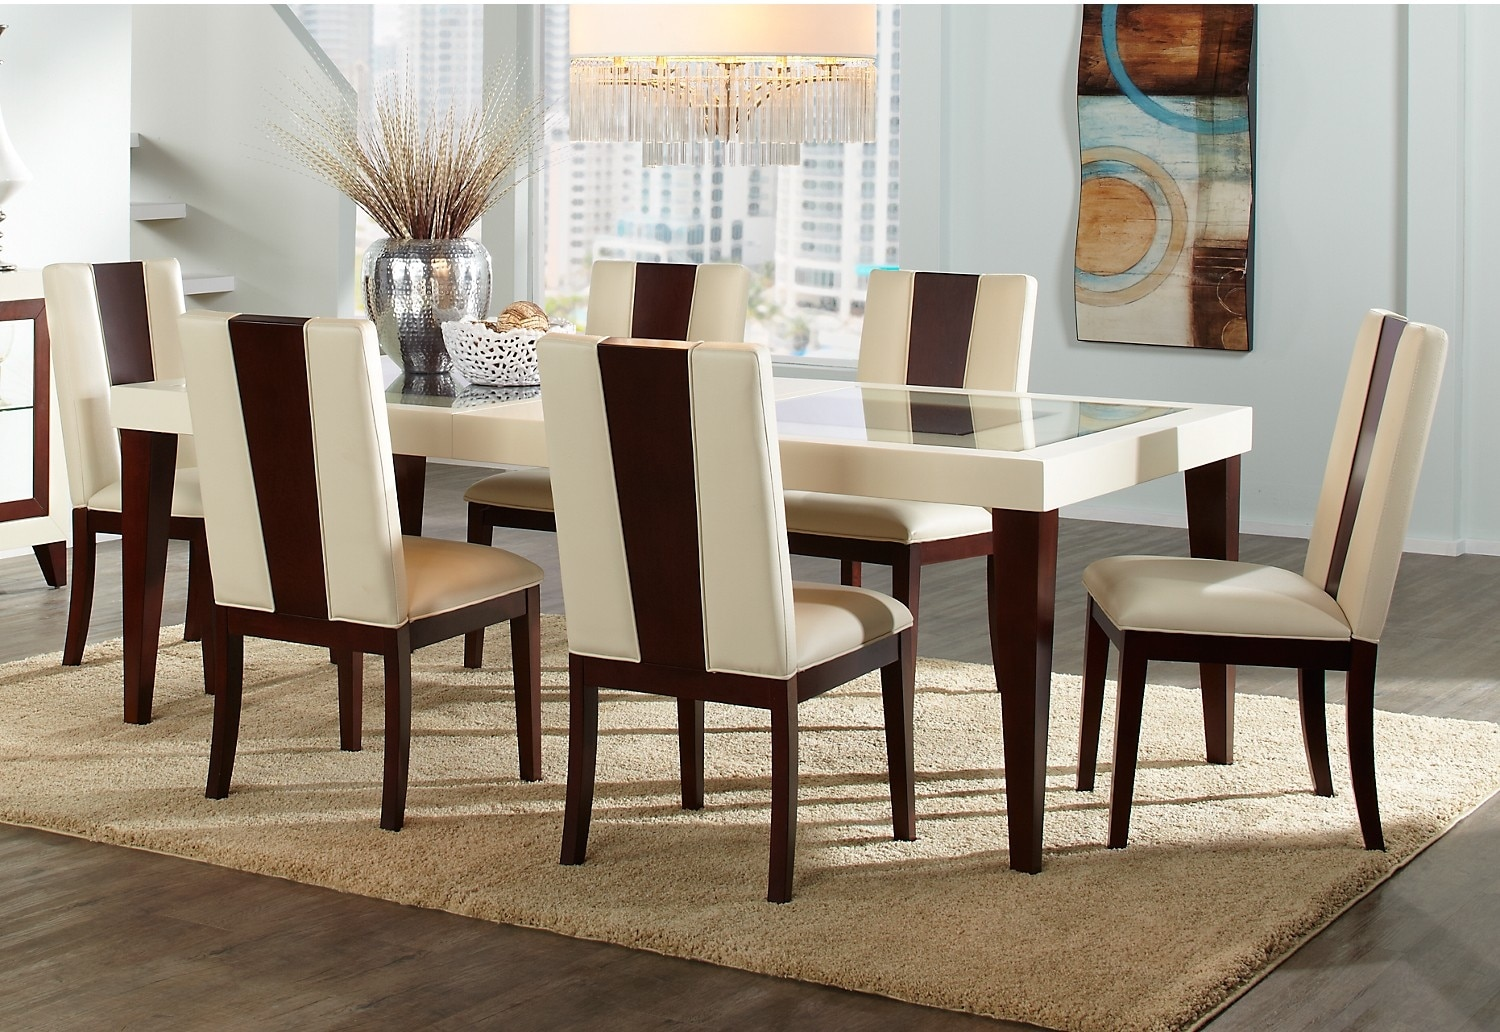 Canadian dining room furniture